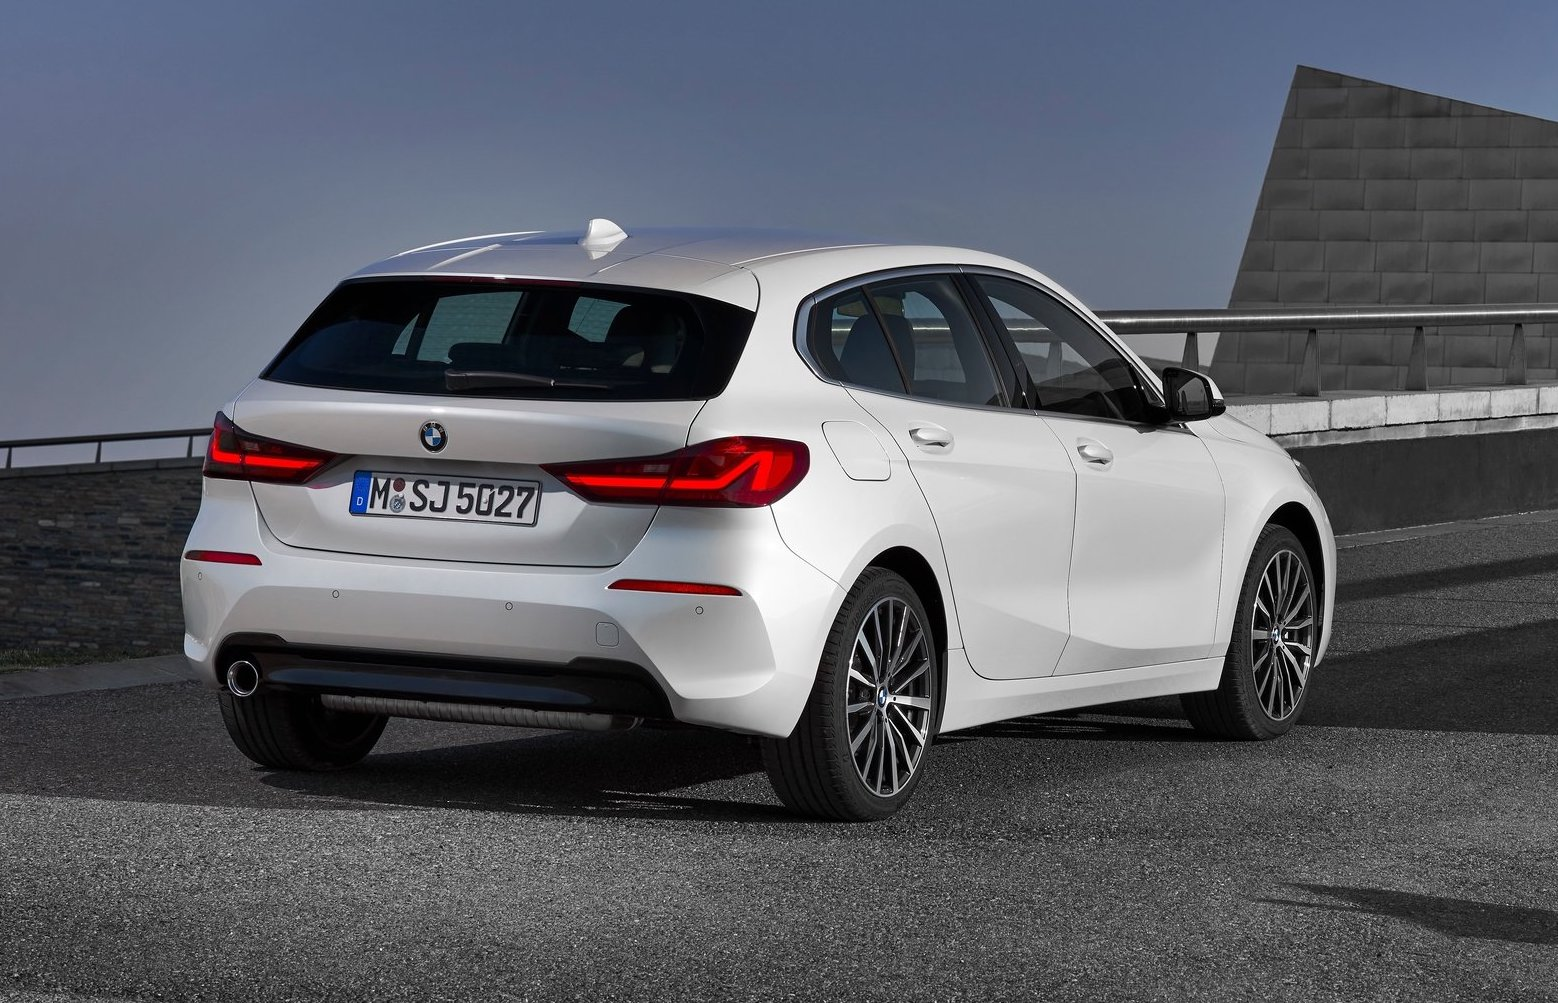 Bmw Serie 1 >> 2020 BMW 1 Series revealed, topped by M135i xDrive